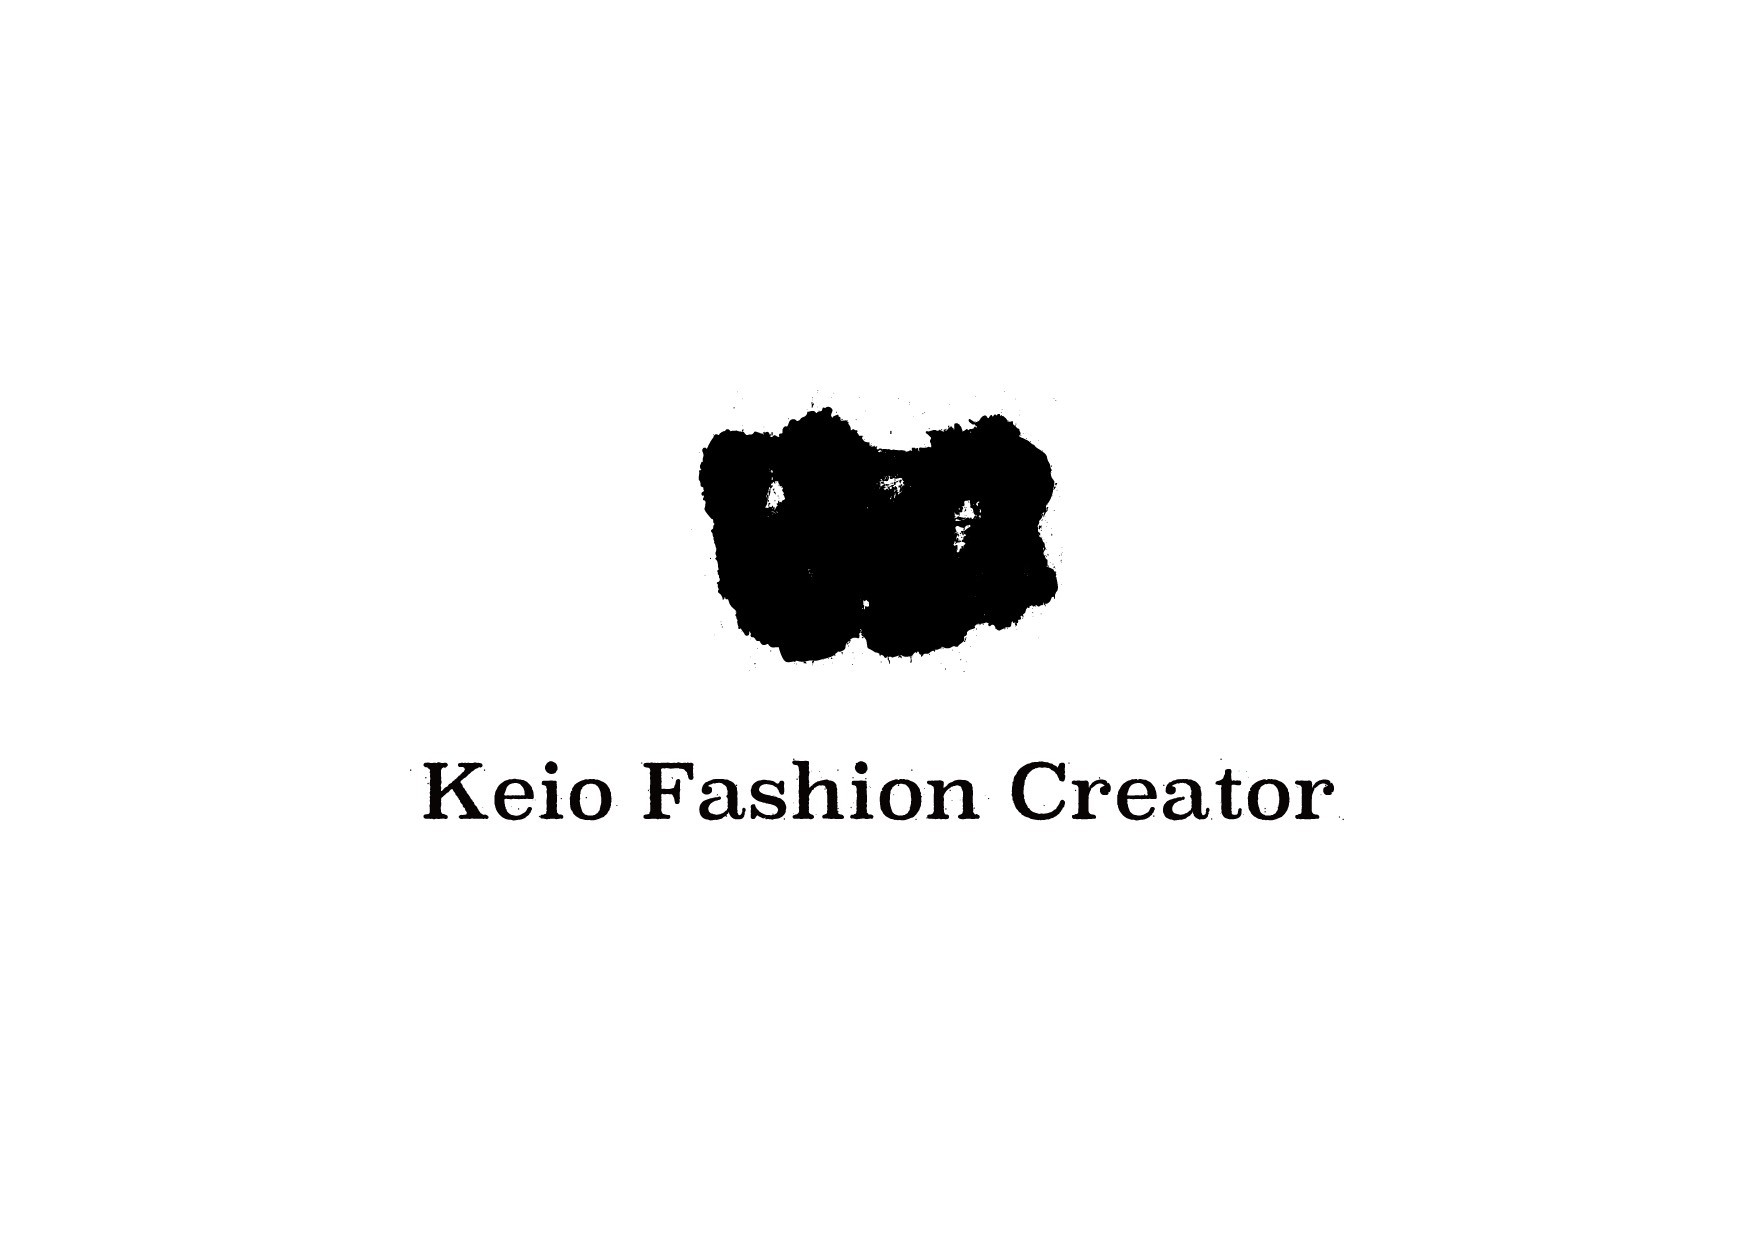 Keio Fashion Creatorのロゴ写真